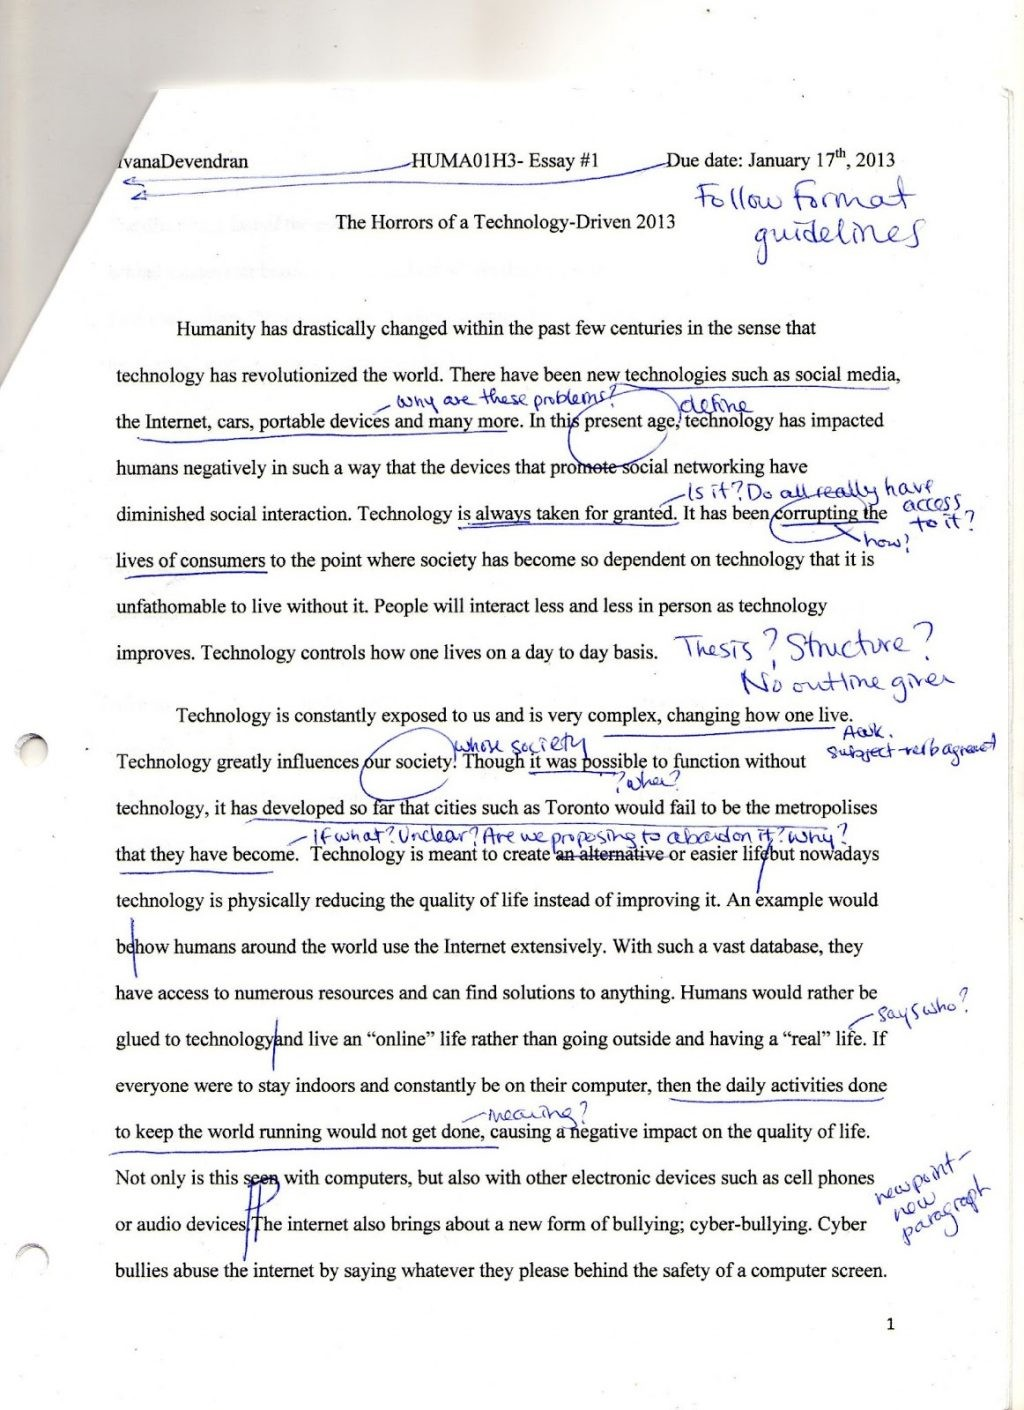 008 Research Paper Essay Topics Music Img008 What Should You Avoid In Writing Humanities Appreciation Questions Classical History Persuasive20 Impressive American Pop Theory Large